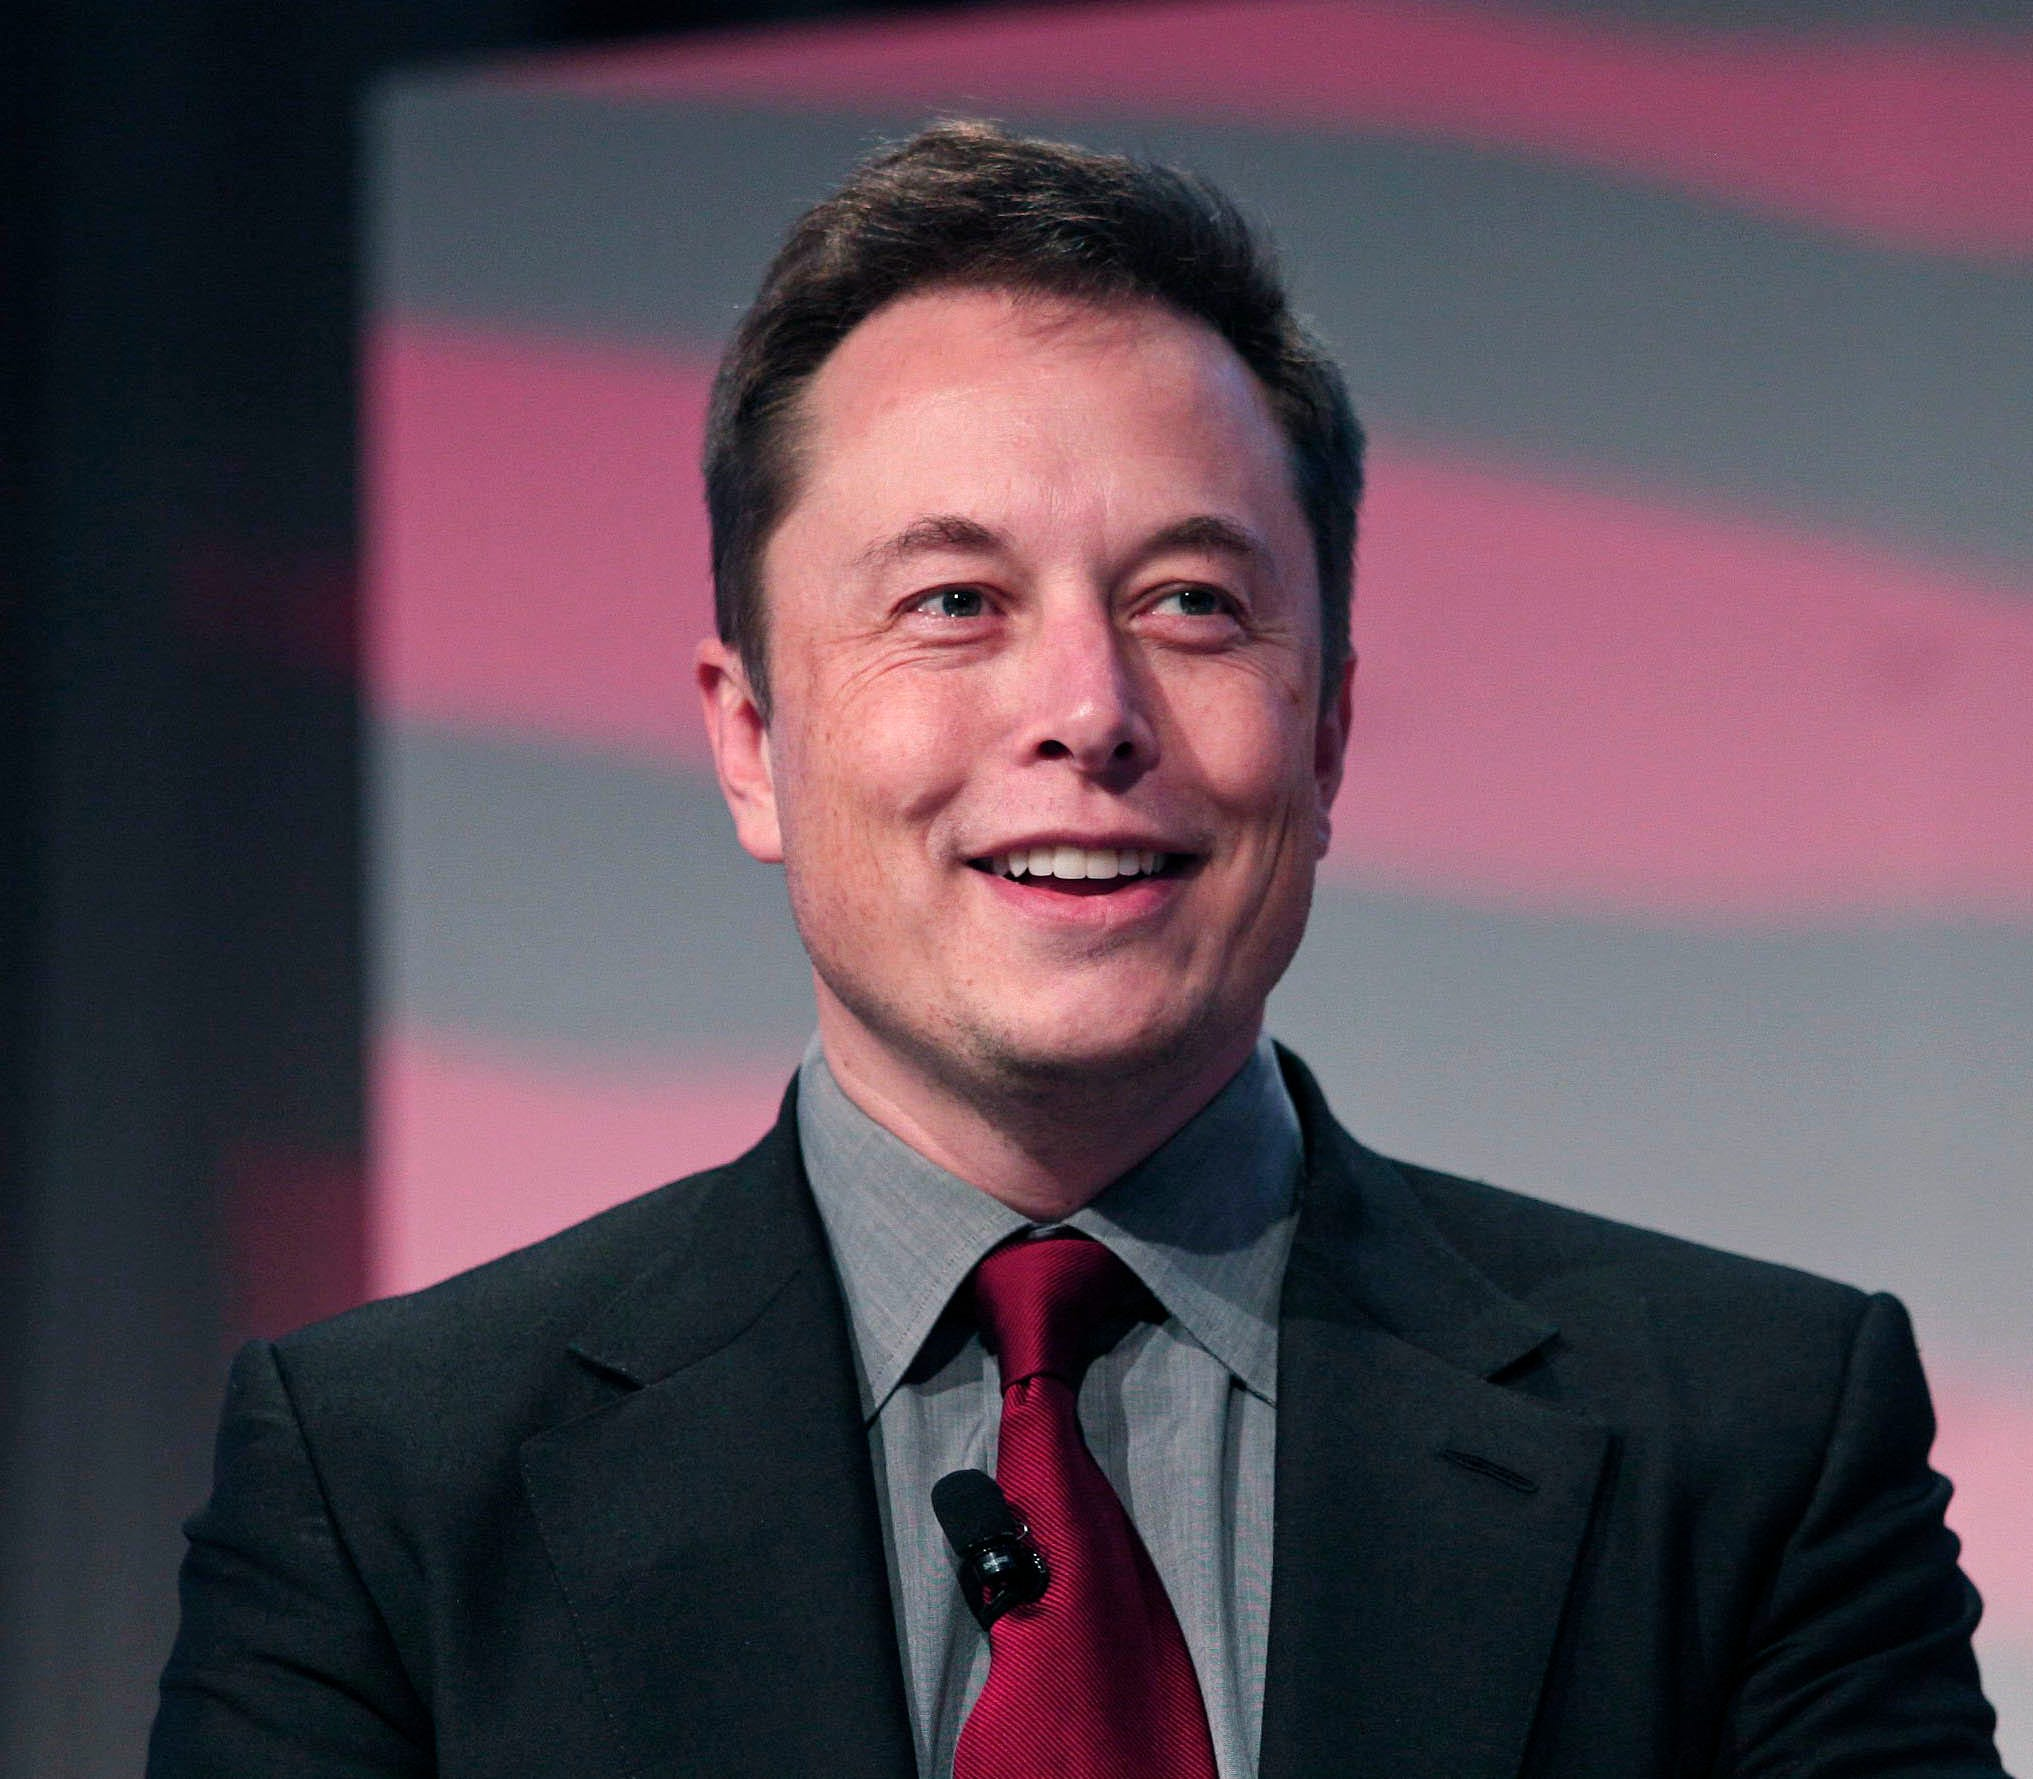 Tesla CEO Elon Musk to pay for water stations, filtration at Flint ...